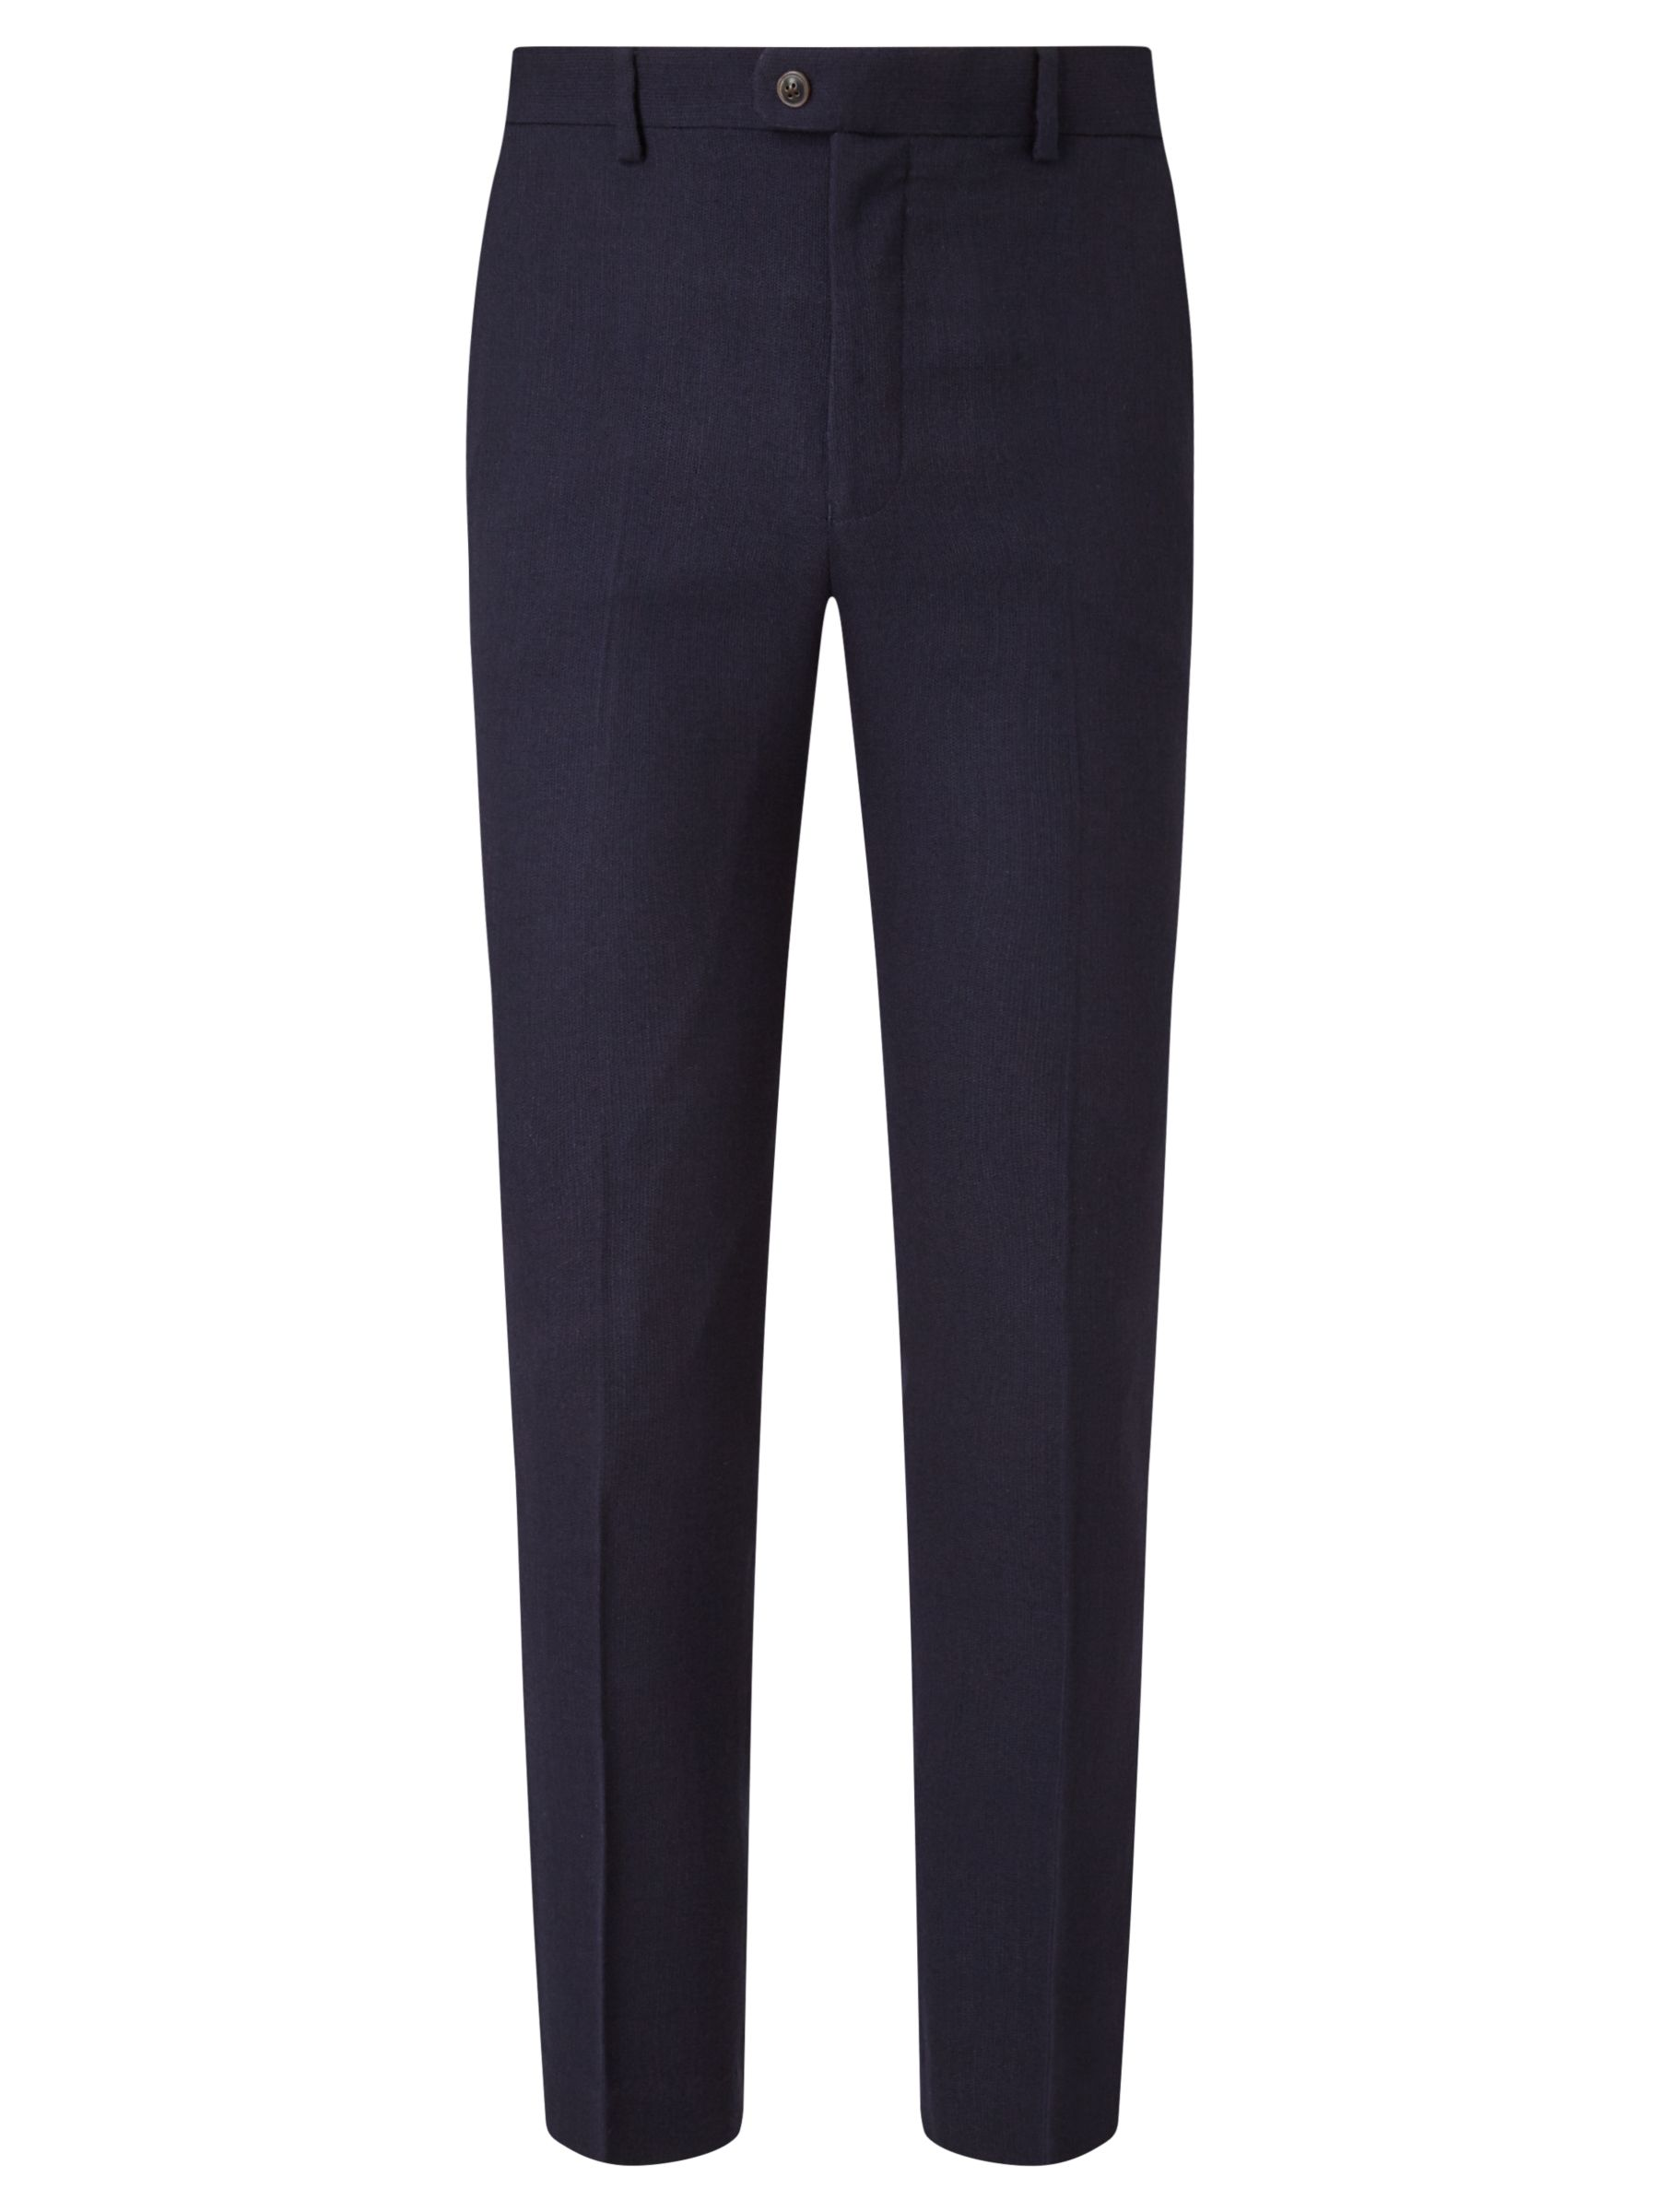 JOHN LEWIS & Co. JOHN LEWIS & Co. Thurloe Brushed Wool Tailored Suit Trousers, Navy